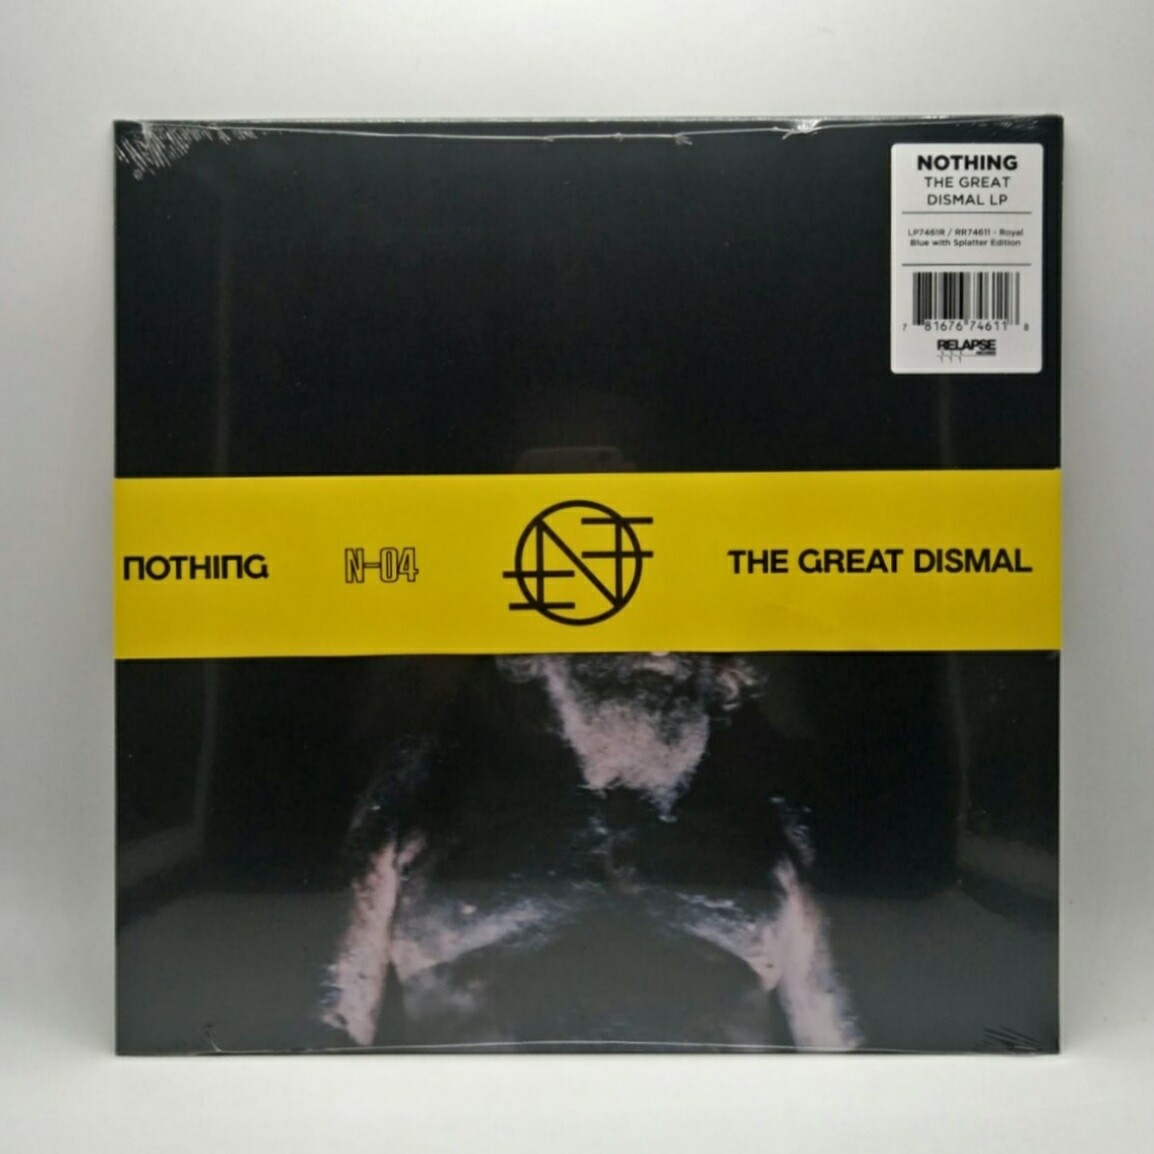 NOTHING -THE GREAT DISMAL- LP (NEON ORANGE AND MILKY CLEAR HALF SPLATTER)